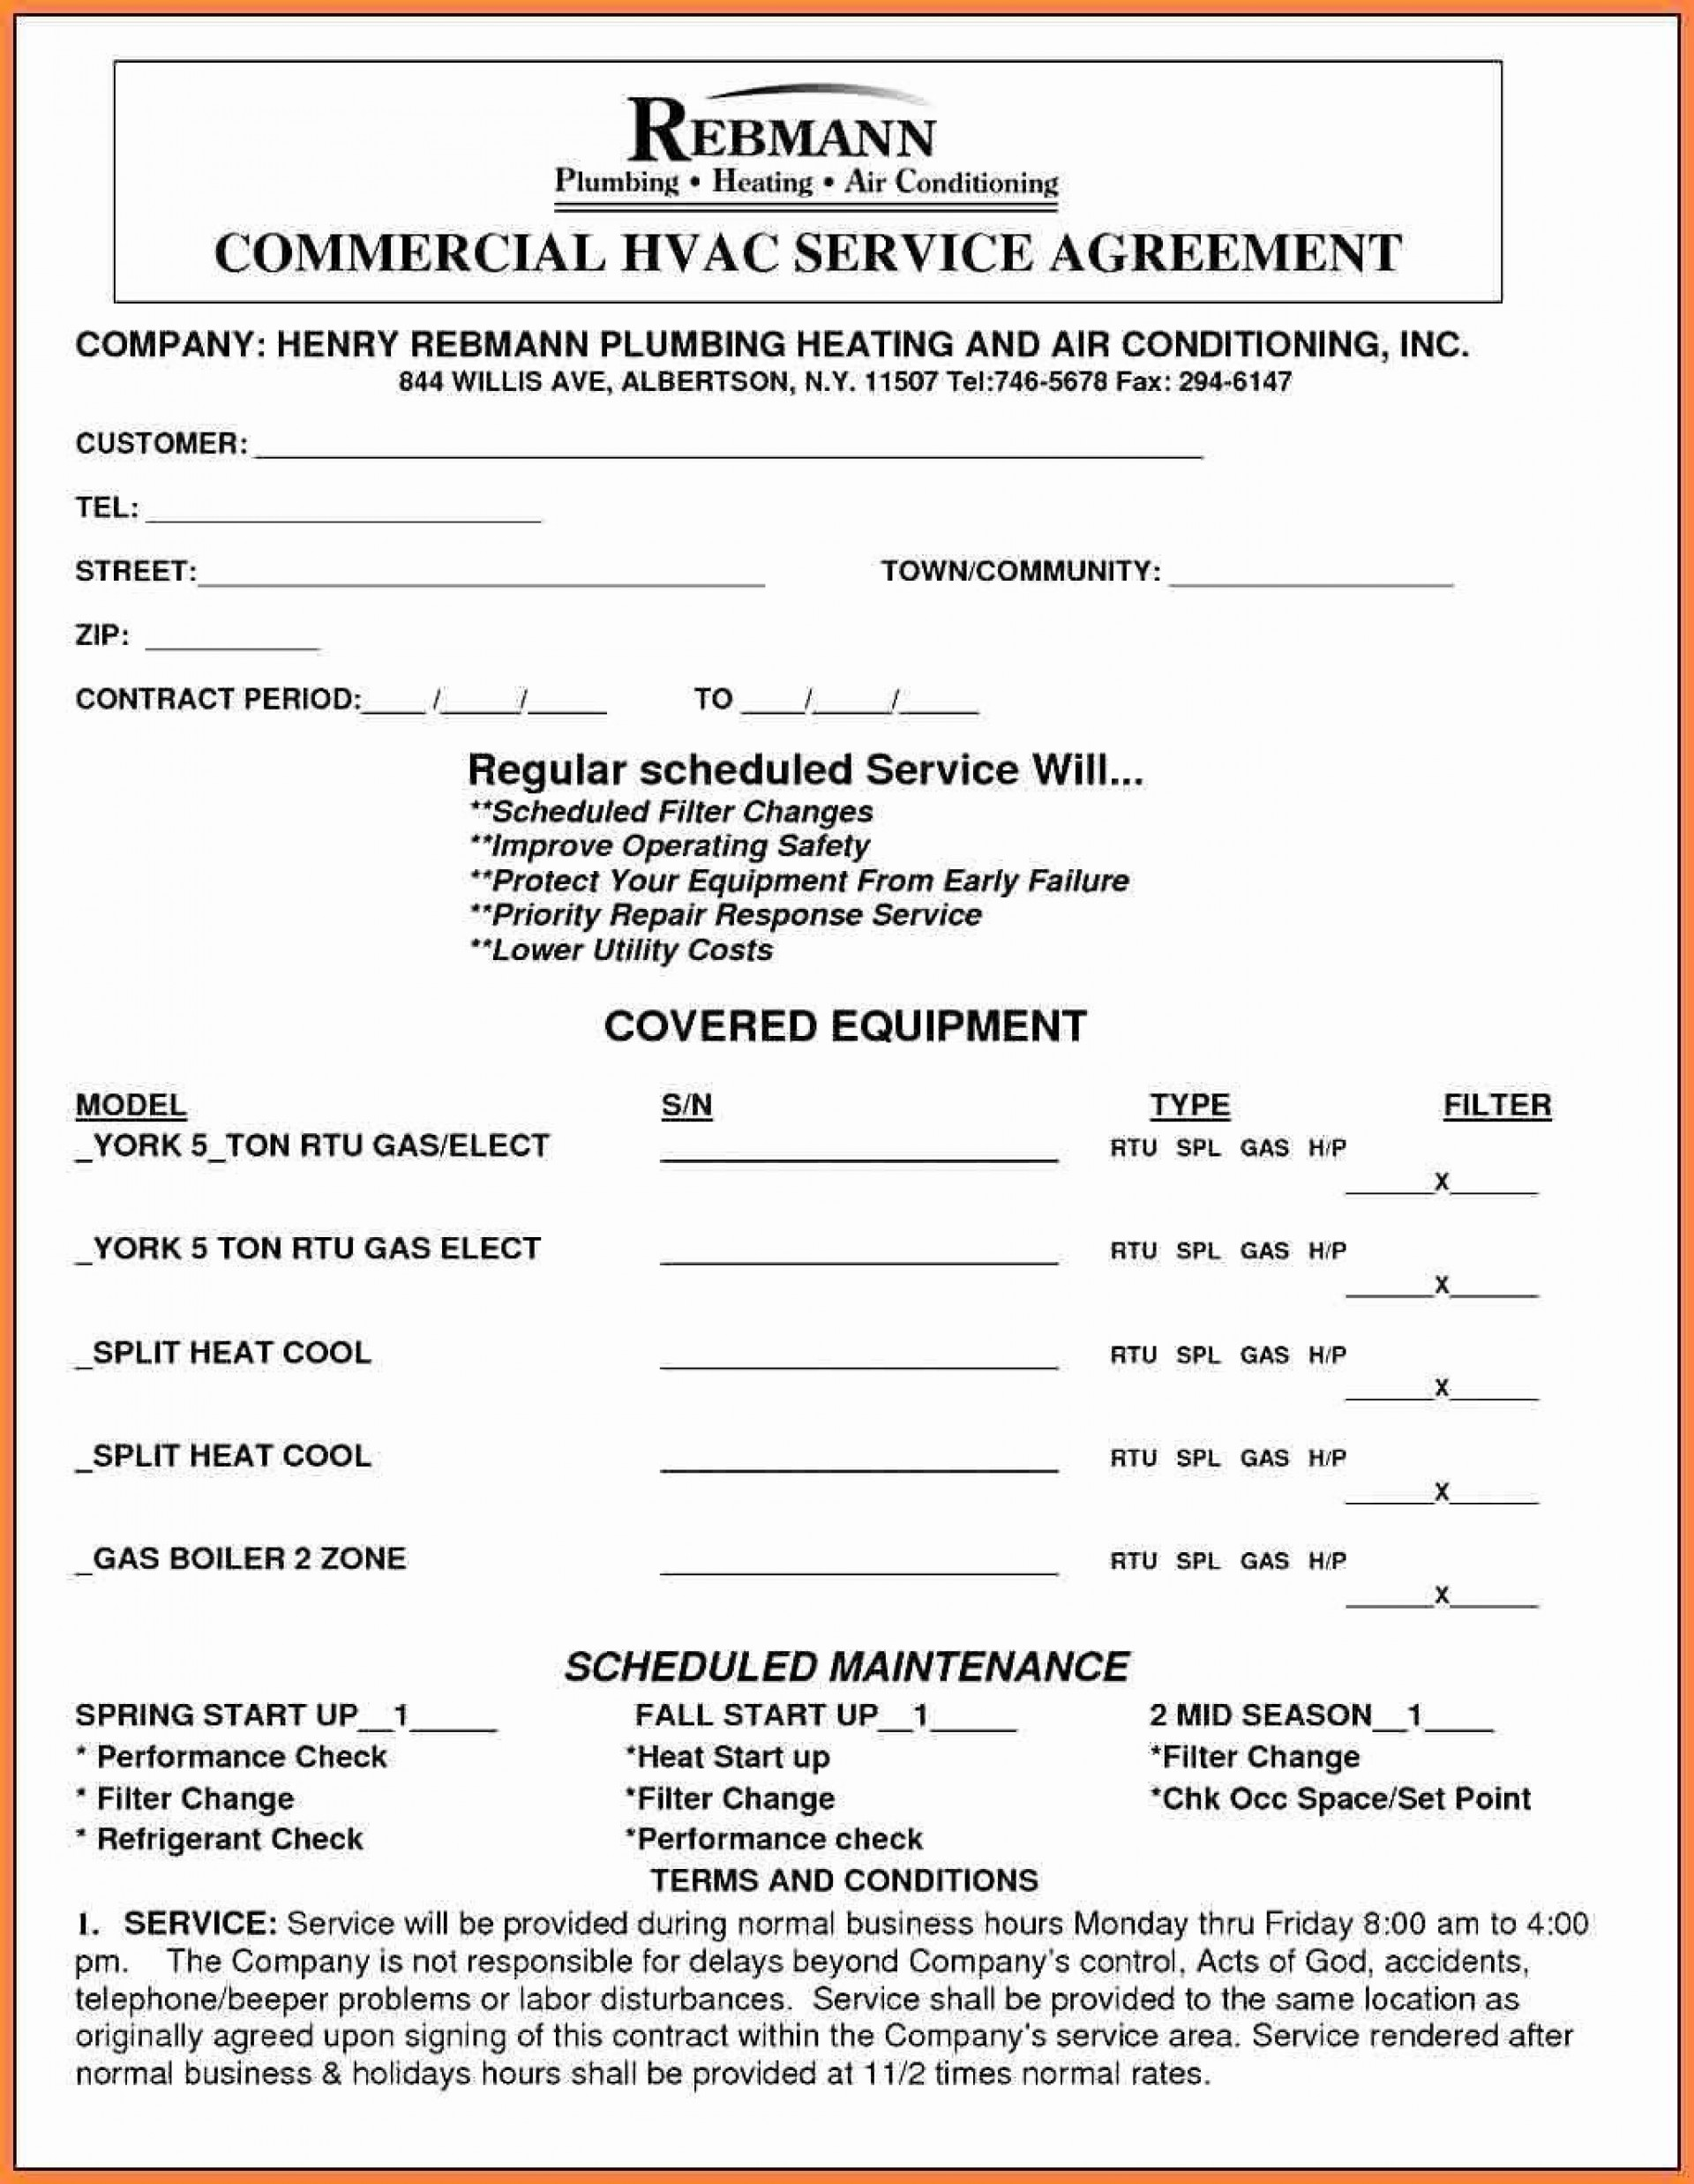 001 Archaicawful Commercial Hvac Service Agreement Template Highest Quality  Maintenance Contract1920